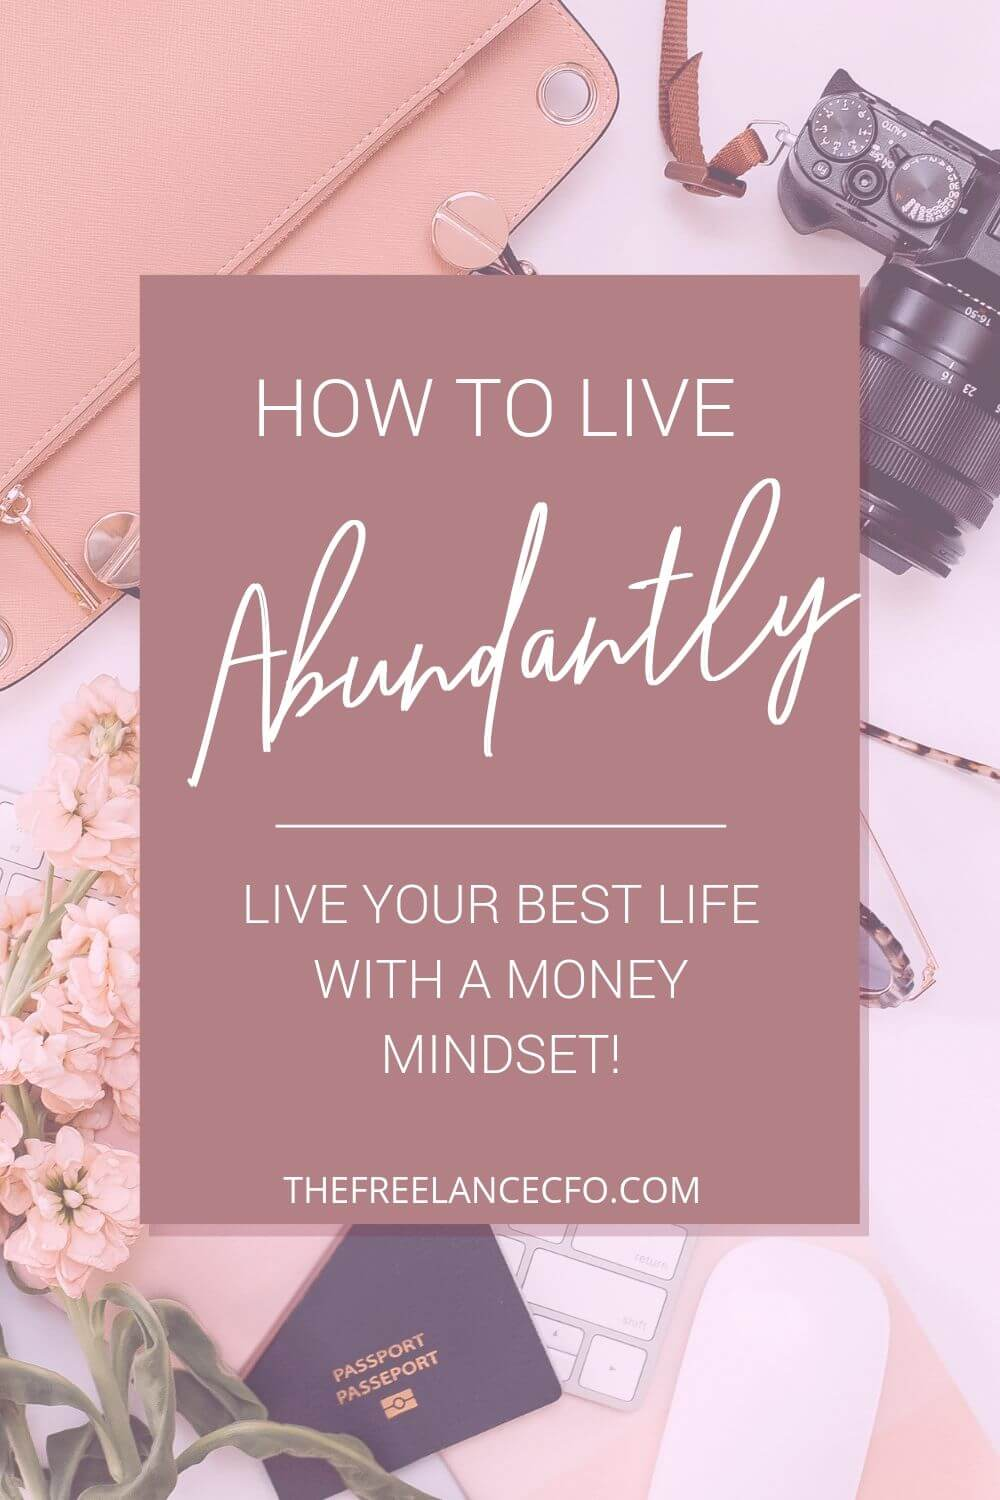 Live your best life by shifting your mindset about money and success. Here's how an abundant mindset changed my life!